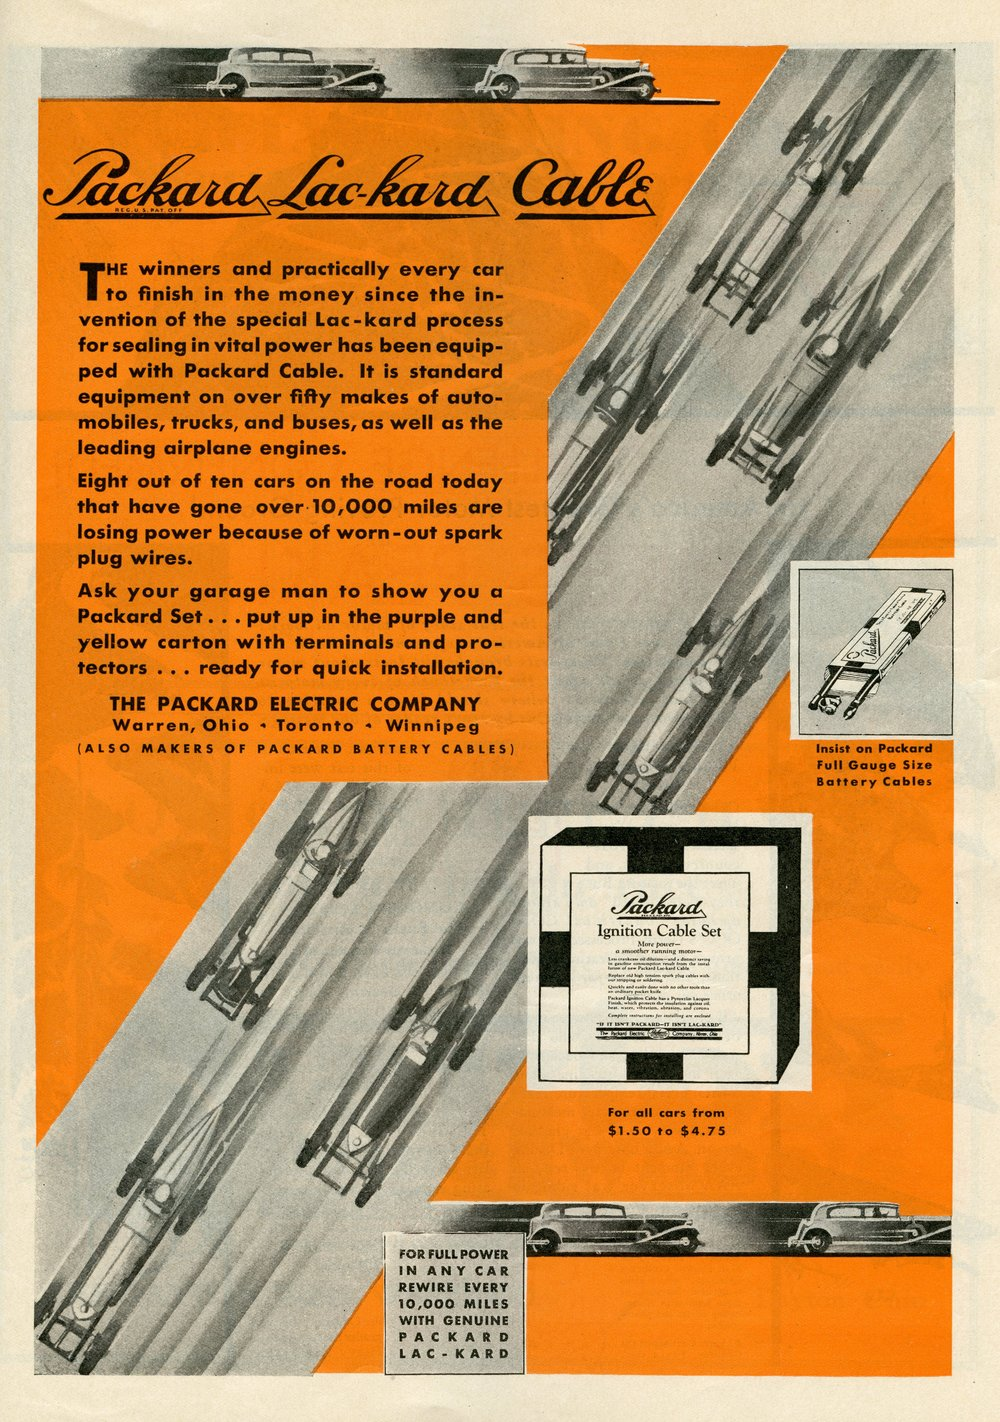 Packard Ignition Cable Set, Indianapolis 500 Program, 1930, page 47, WOS#2719